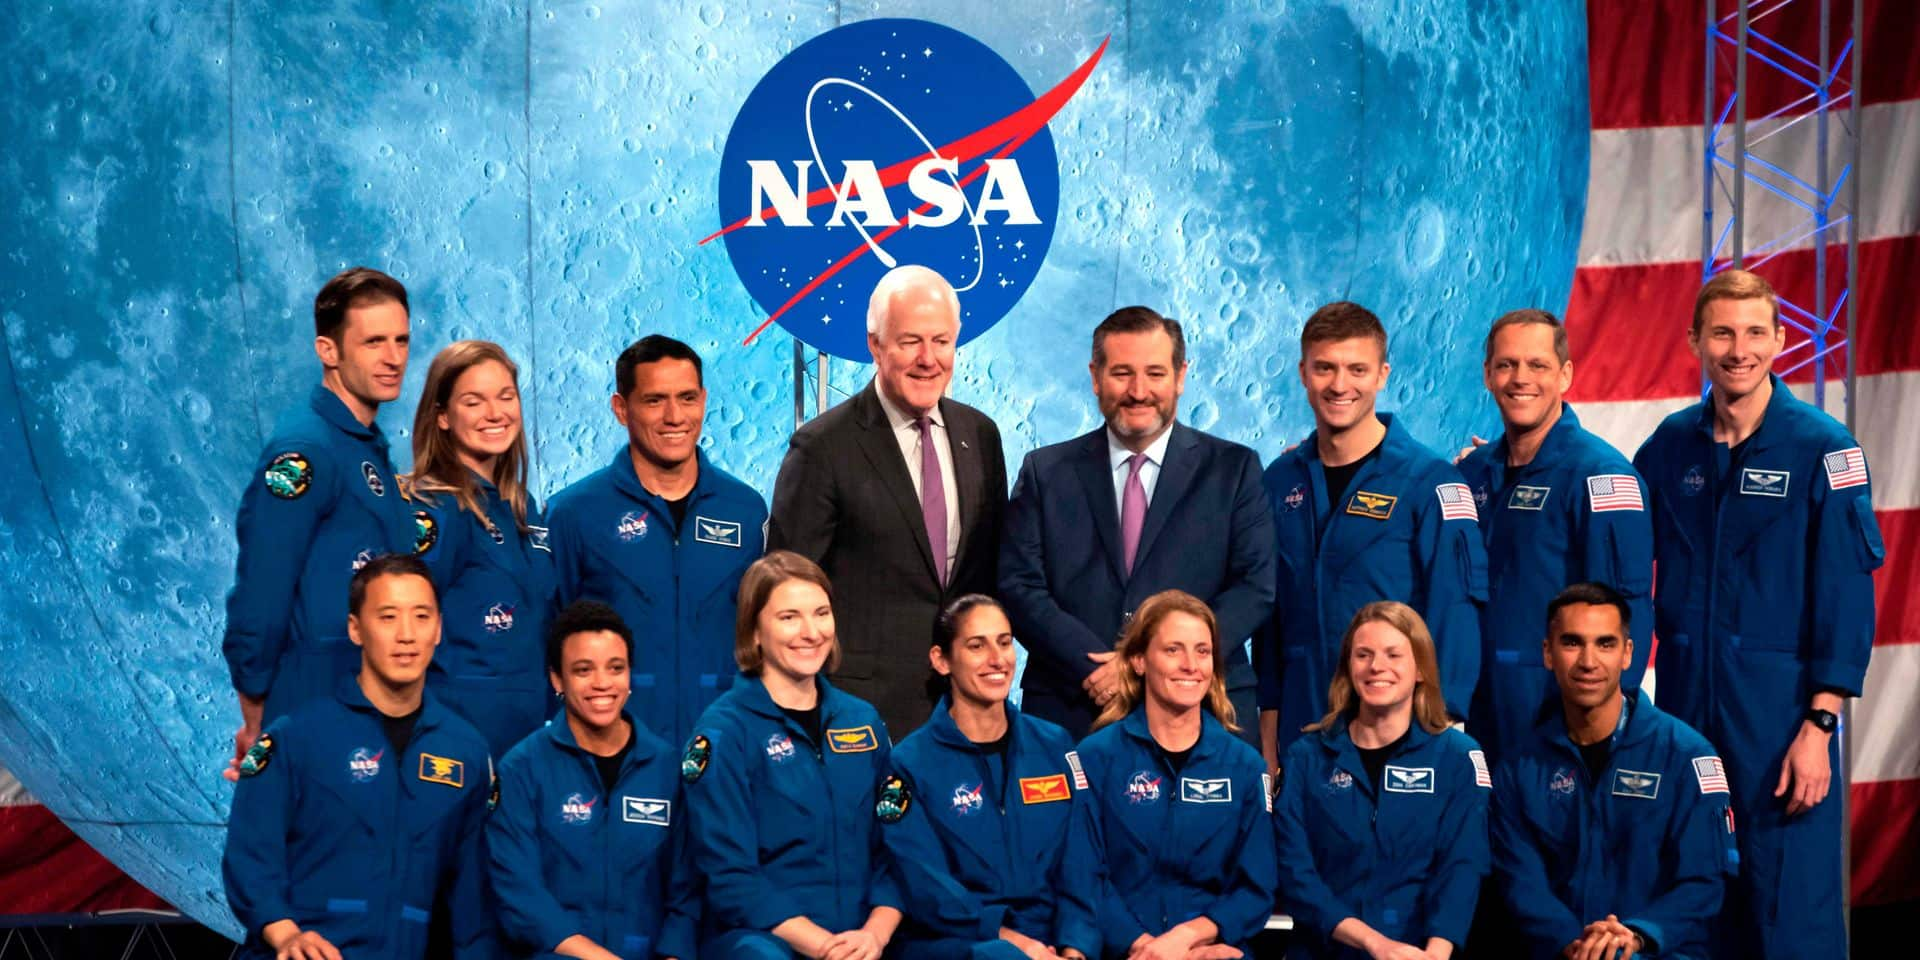 NASA holds astronaut graduation ceremony